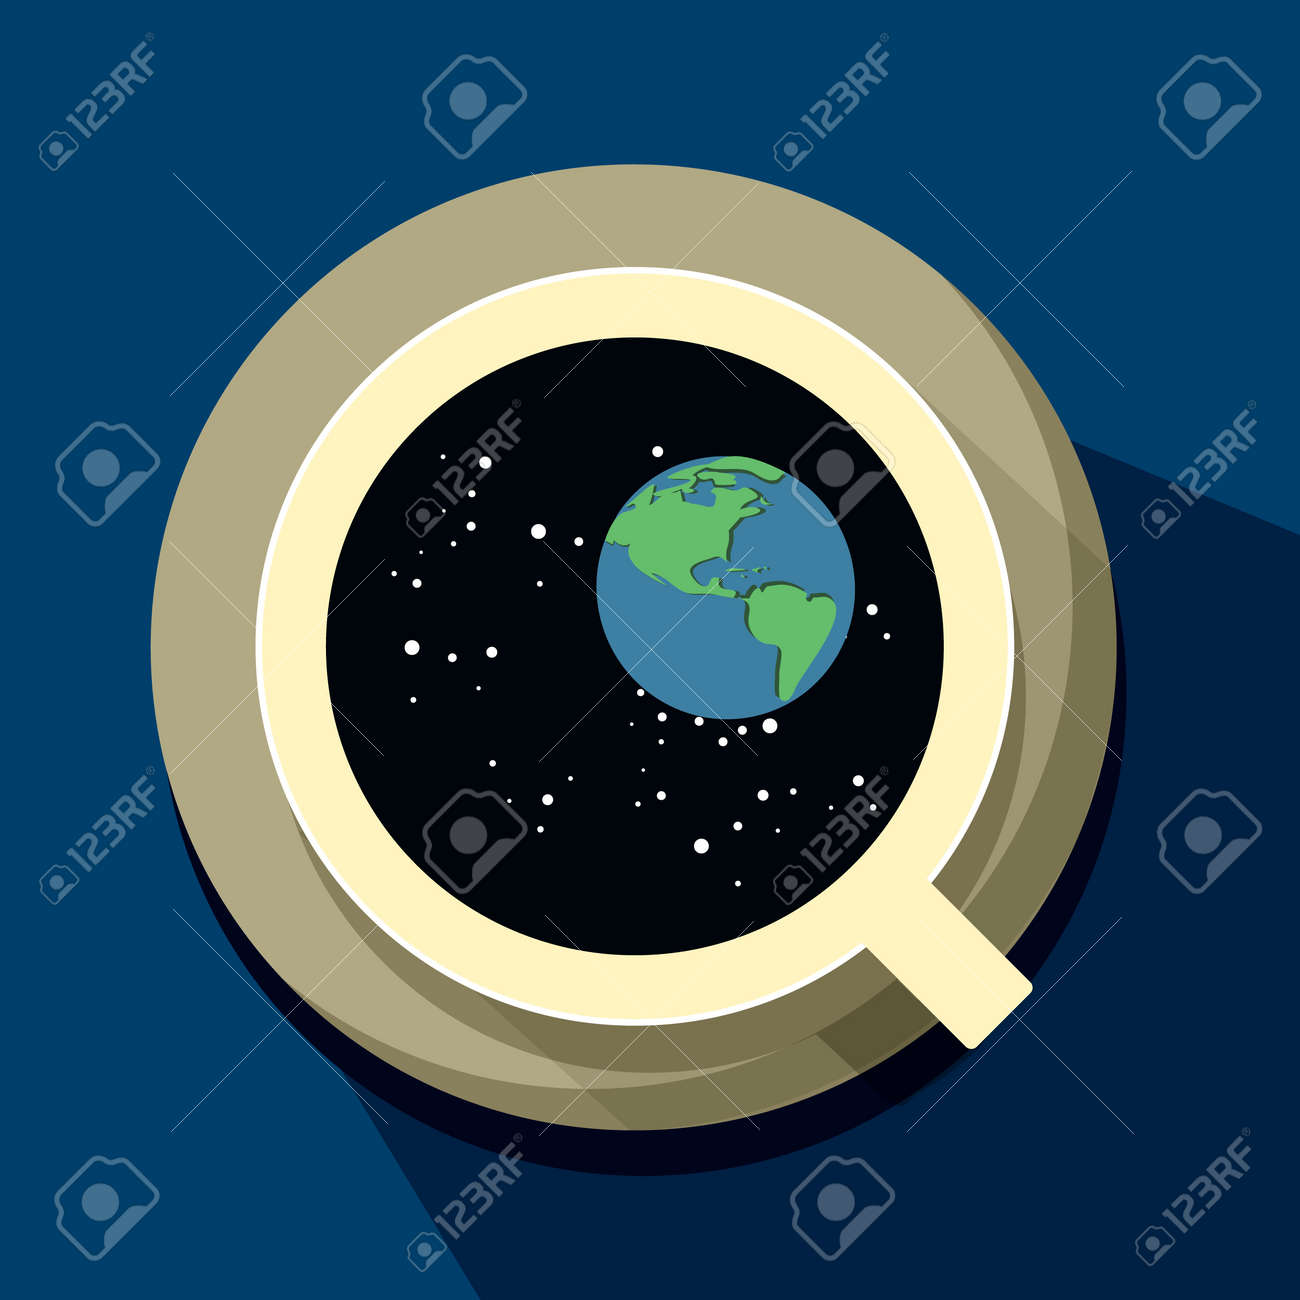 Coffee Cup With Galaxy Inside Vector Illustration Isolated On